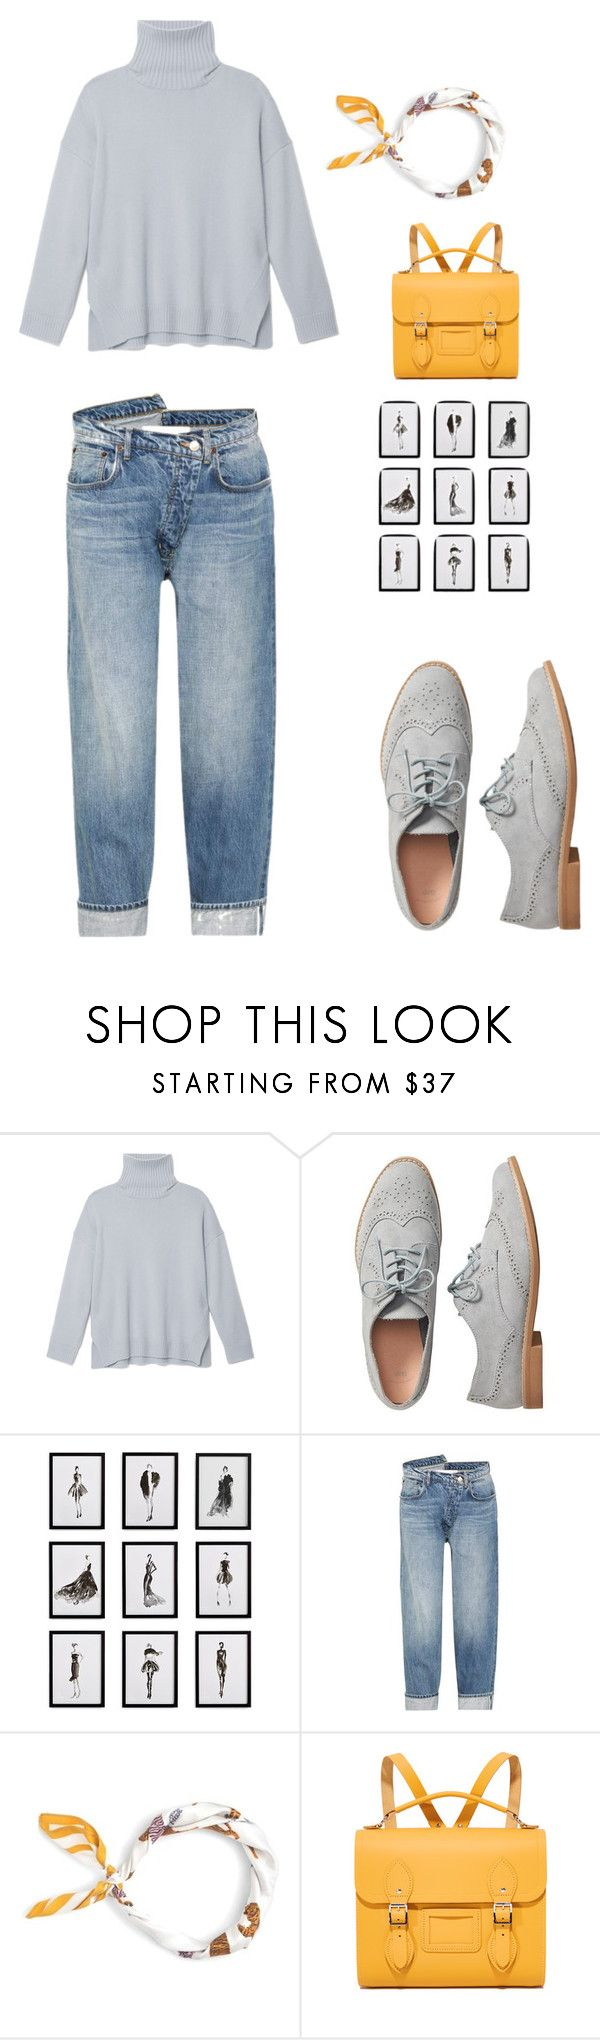 """everyday causal"" by janaya-08 on Polyvore featuring TIBI, Gap, Frontgate, Monse, J.Crew and The Cambridge Satchel Company"